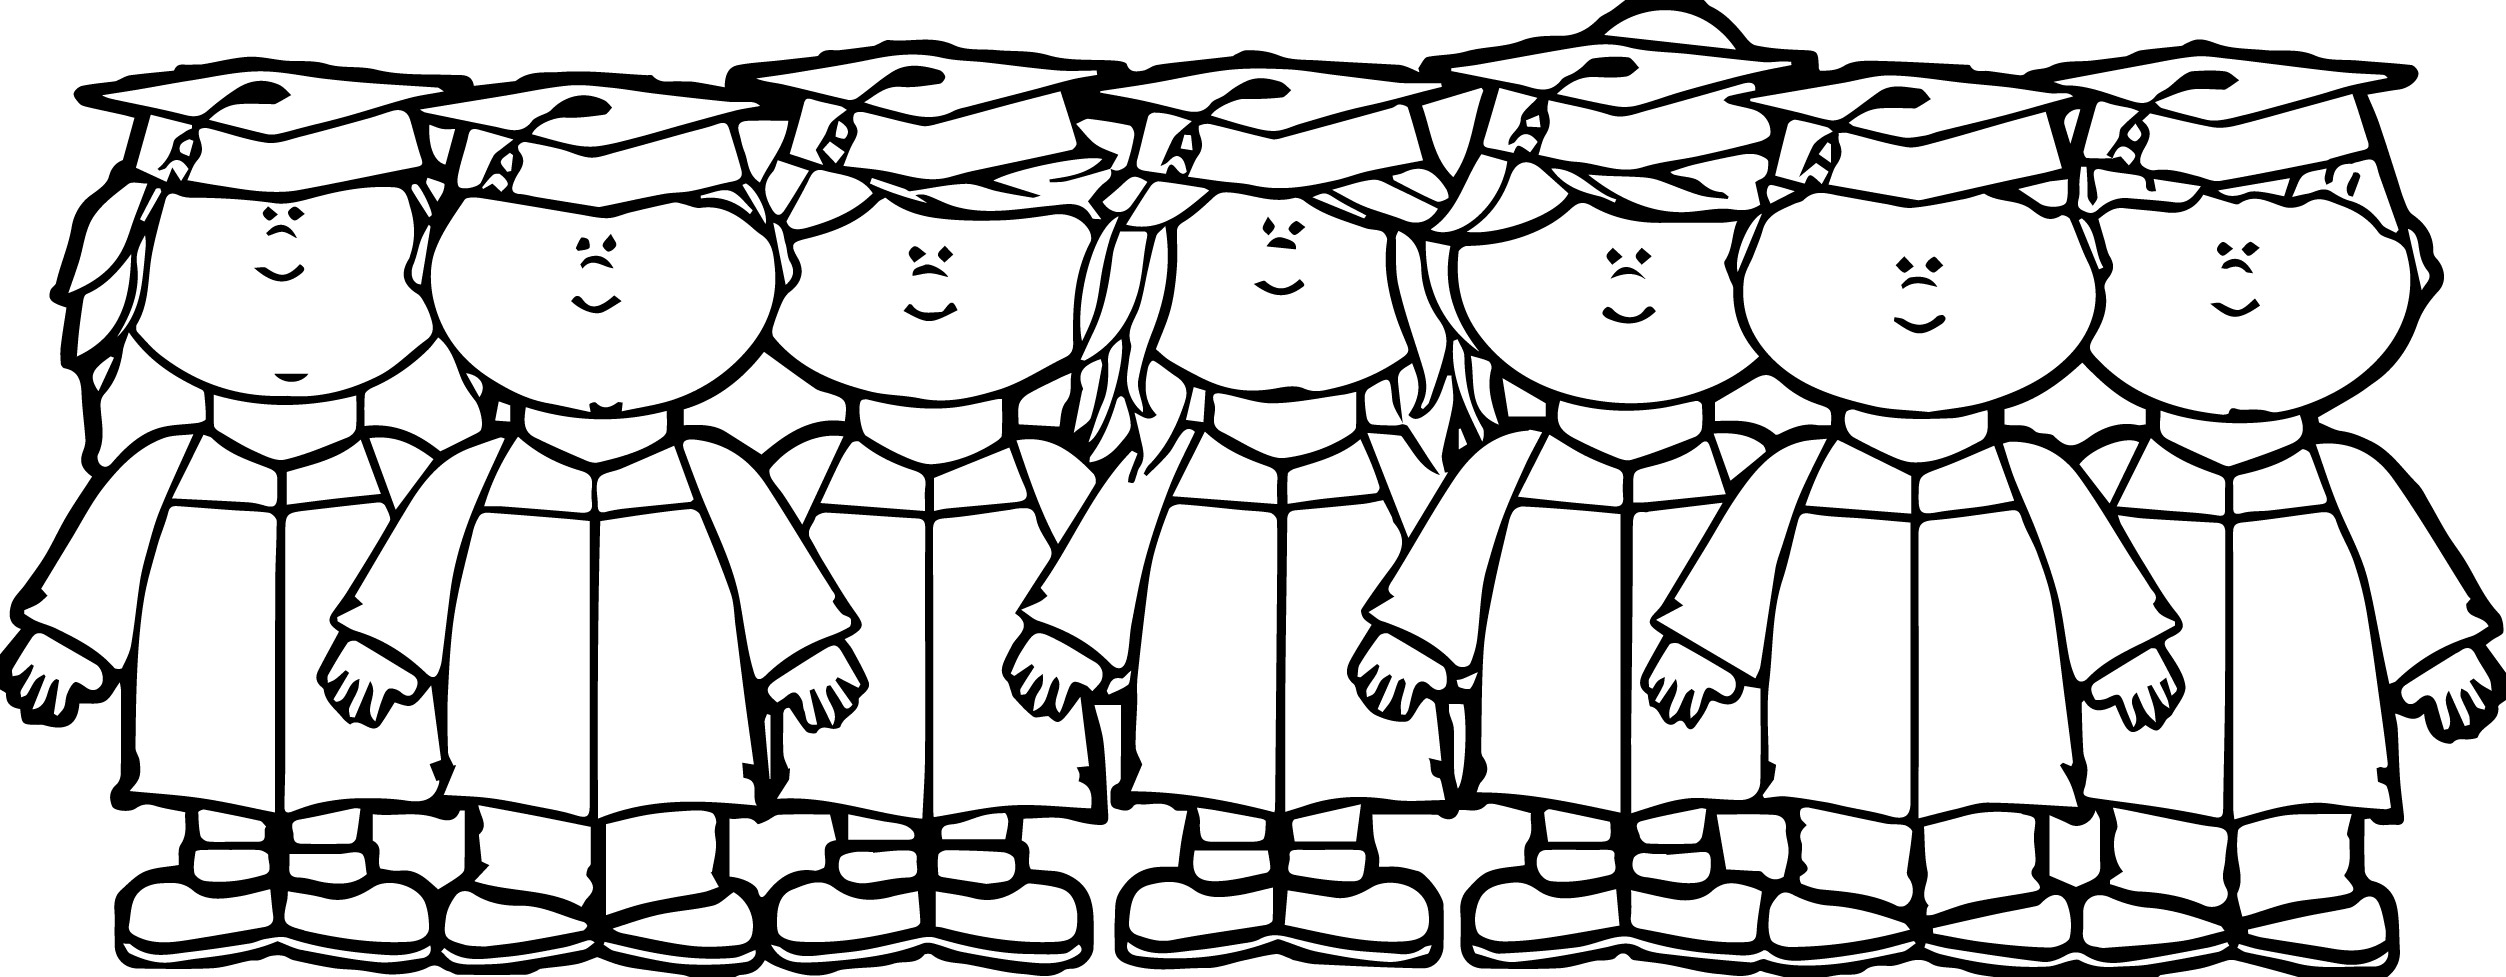 Graduation clipart black and white 7 » Clipart Station